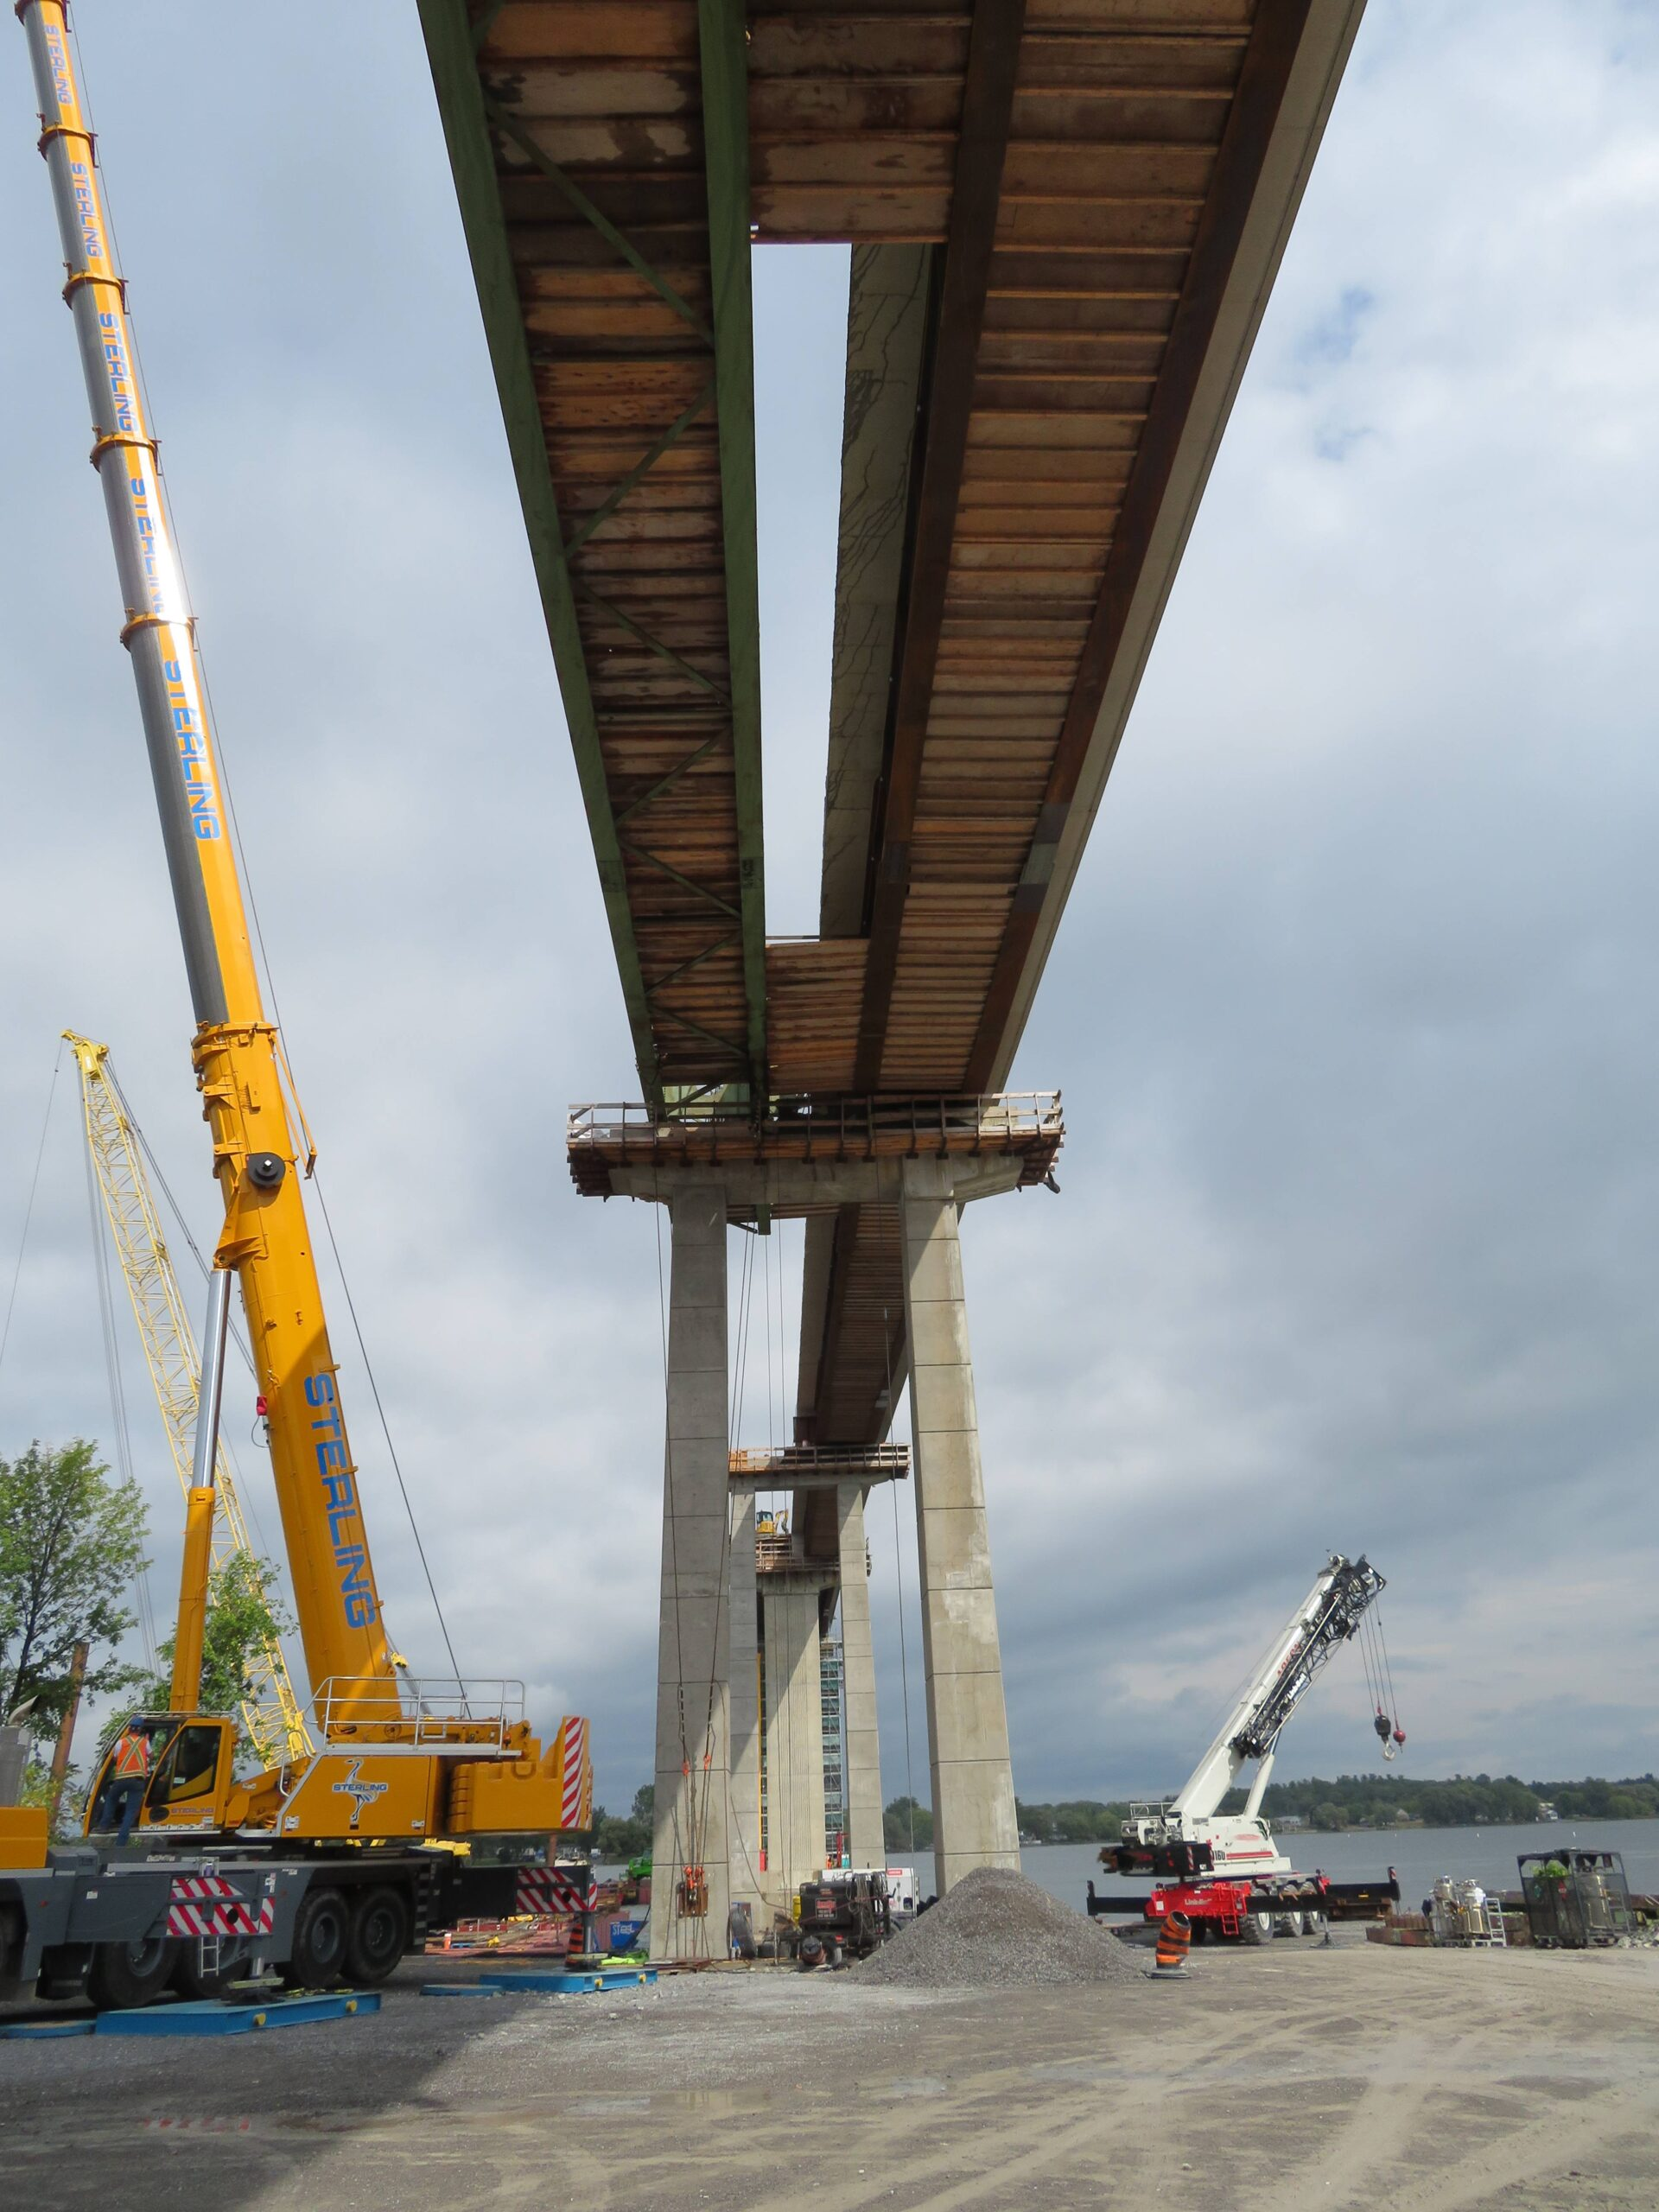 Removing the false decking between piers 13 and 14 in preparation for girder removals